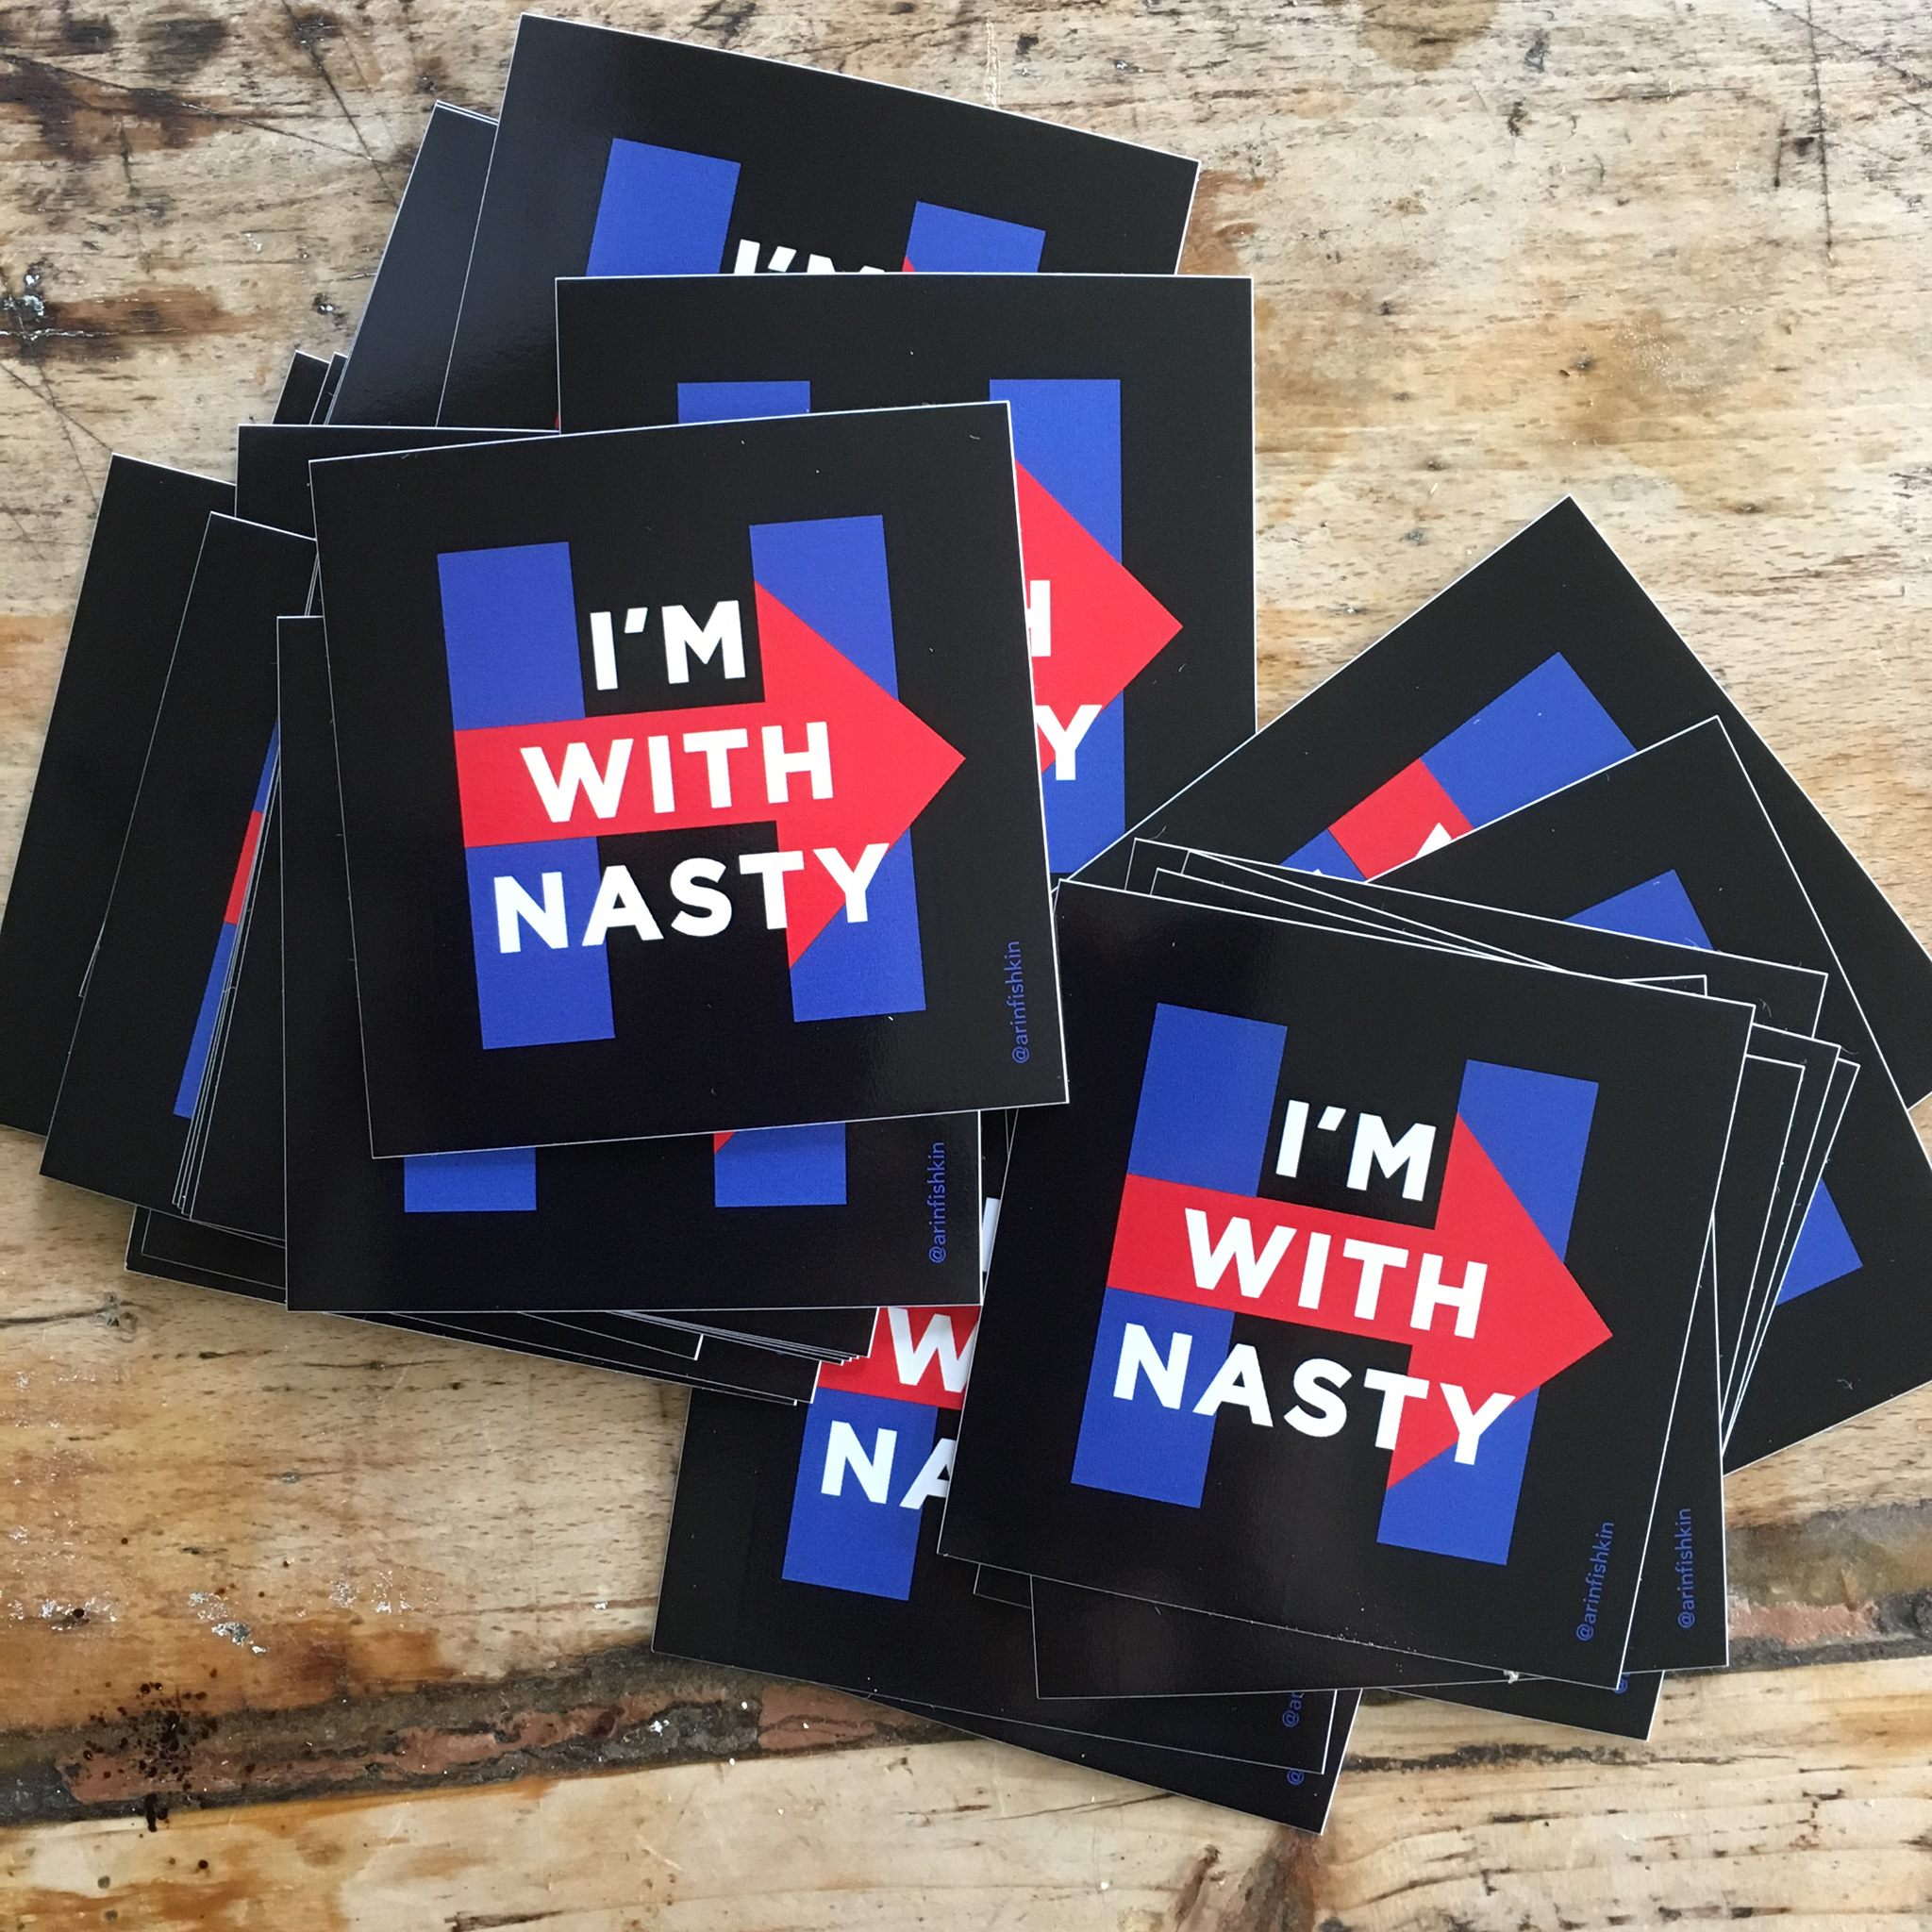 Im With Nasty sticker design